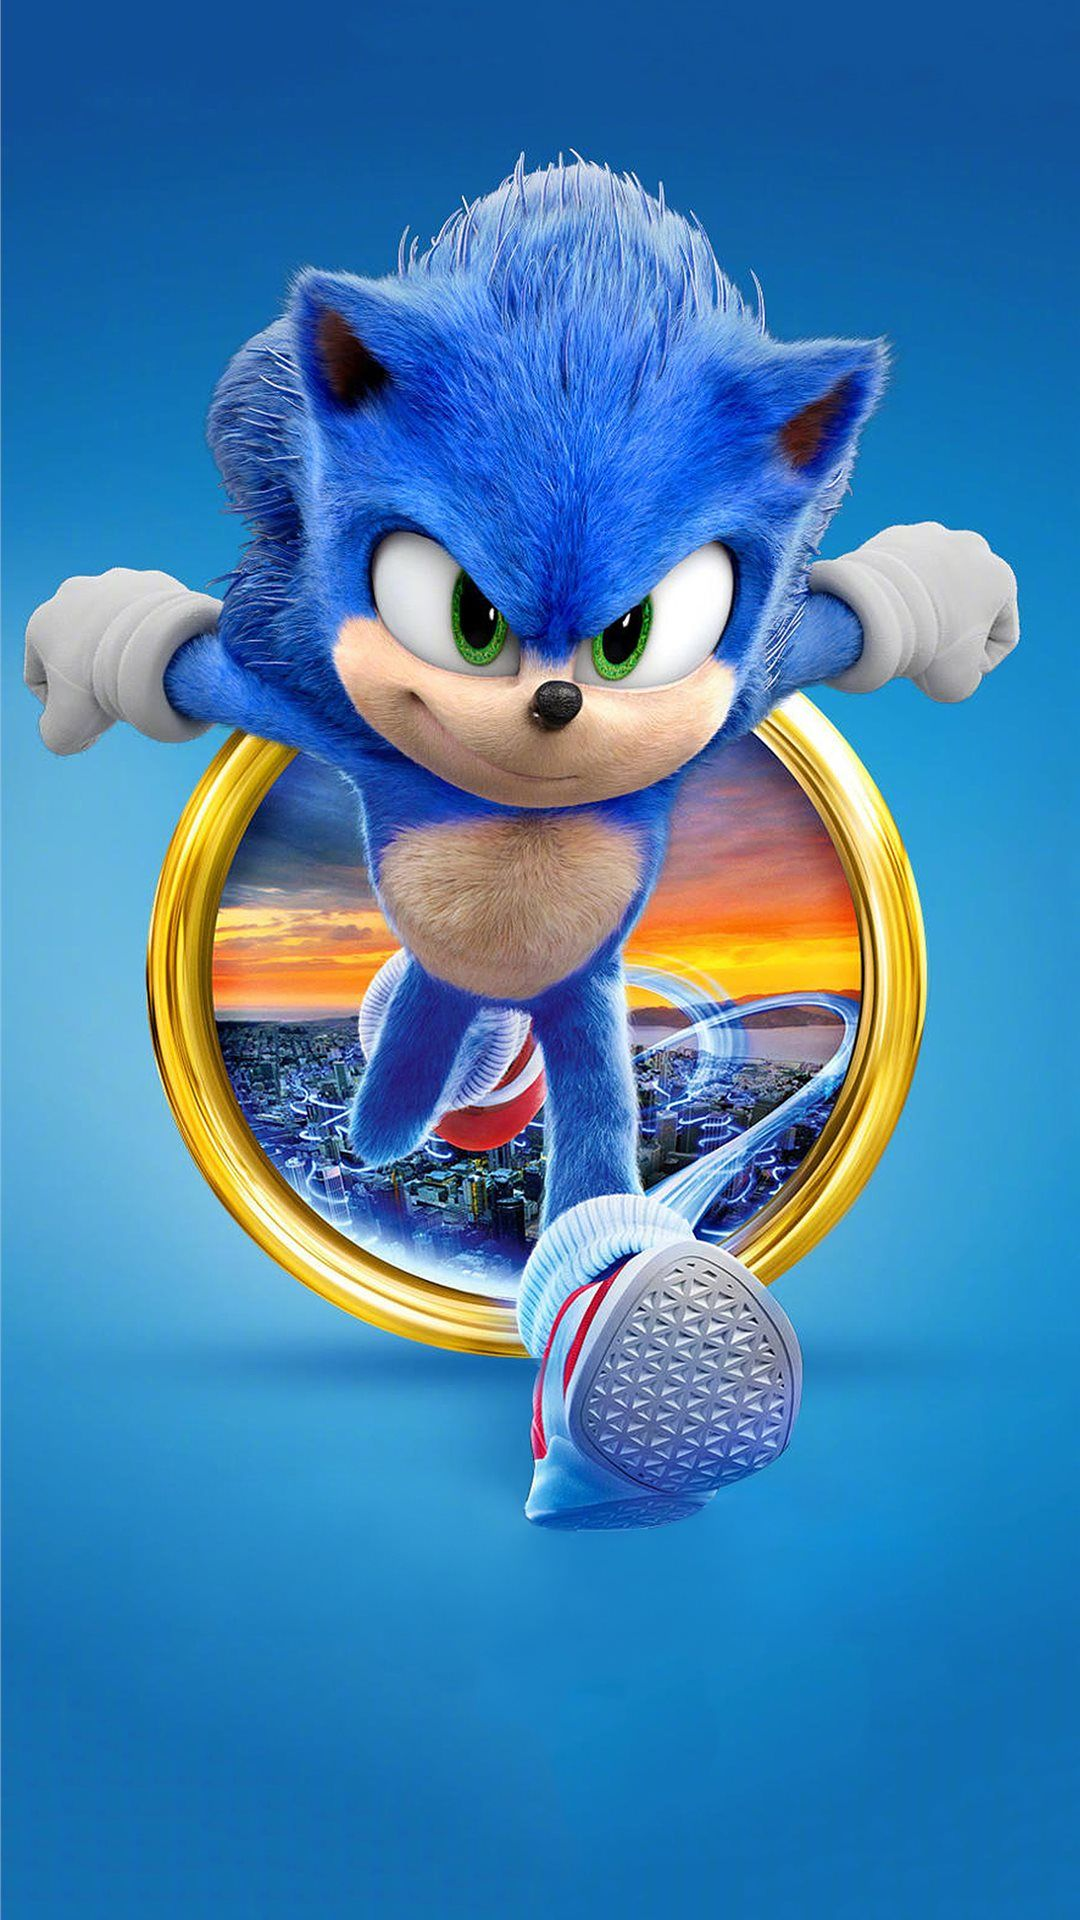 sonic the hedgehog 2020 4k iPhone 8 Wallpapers in 2020